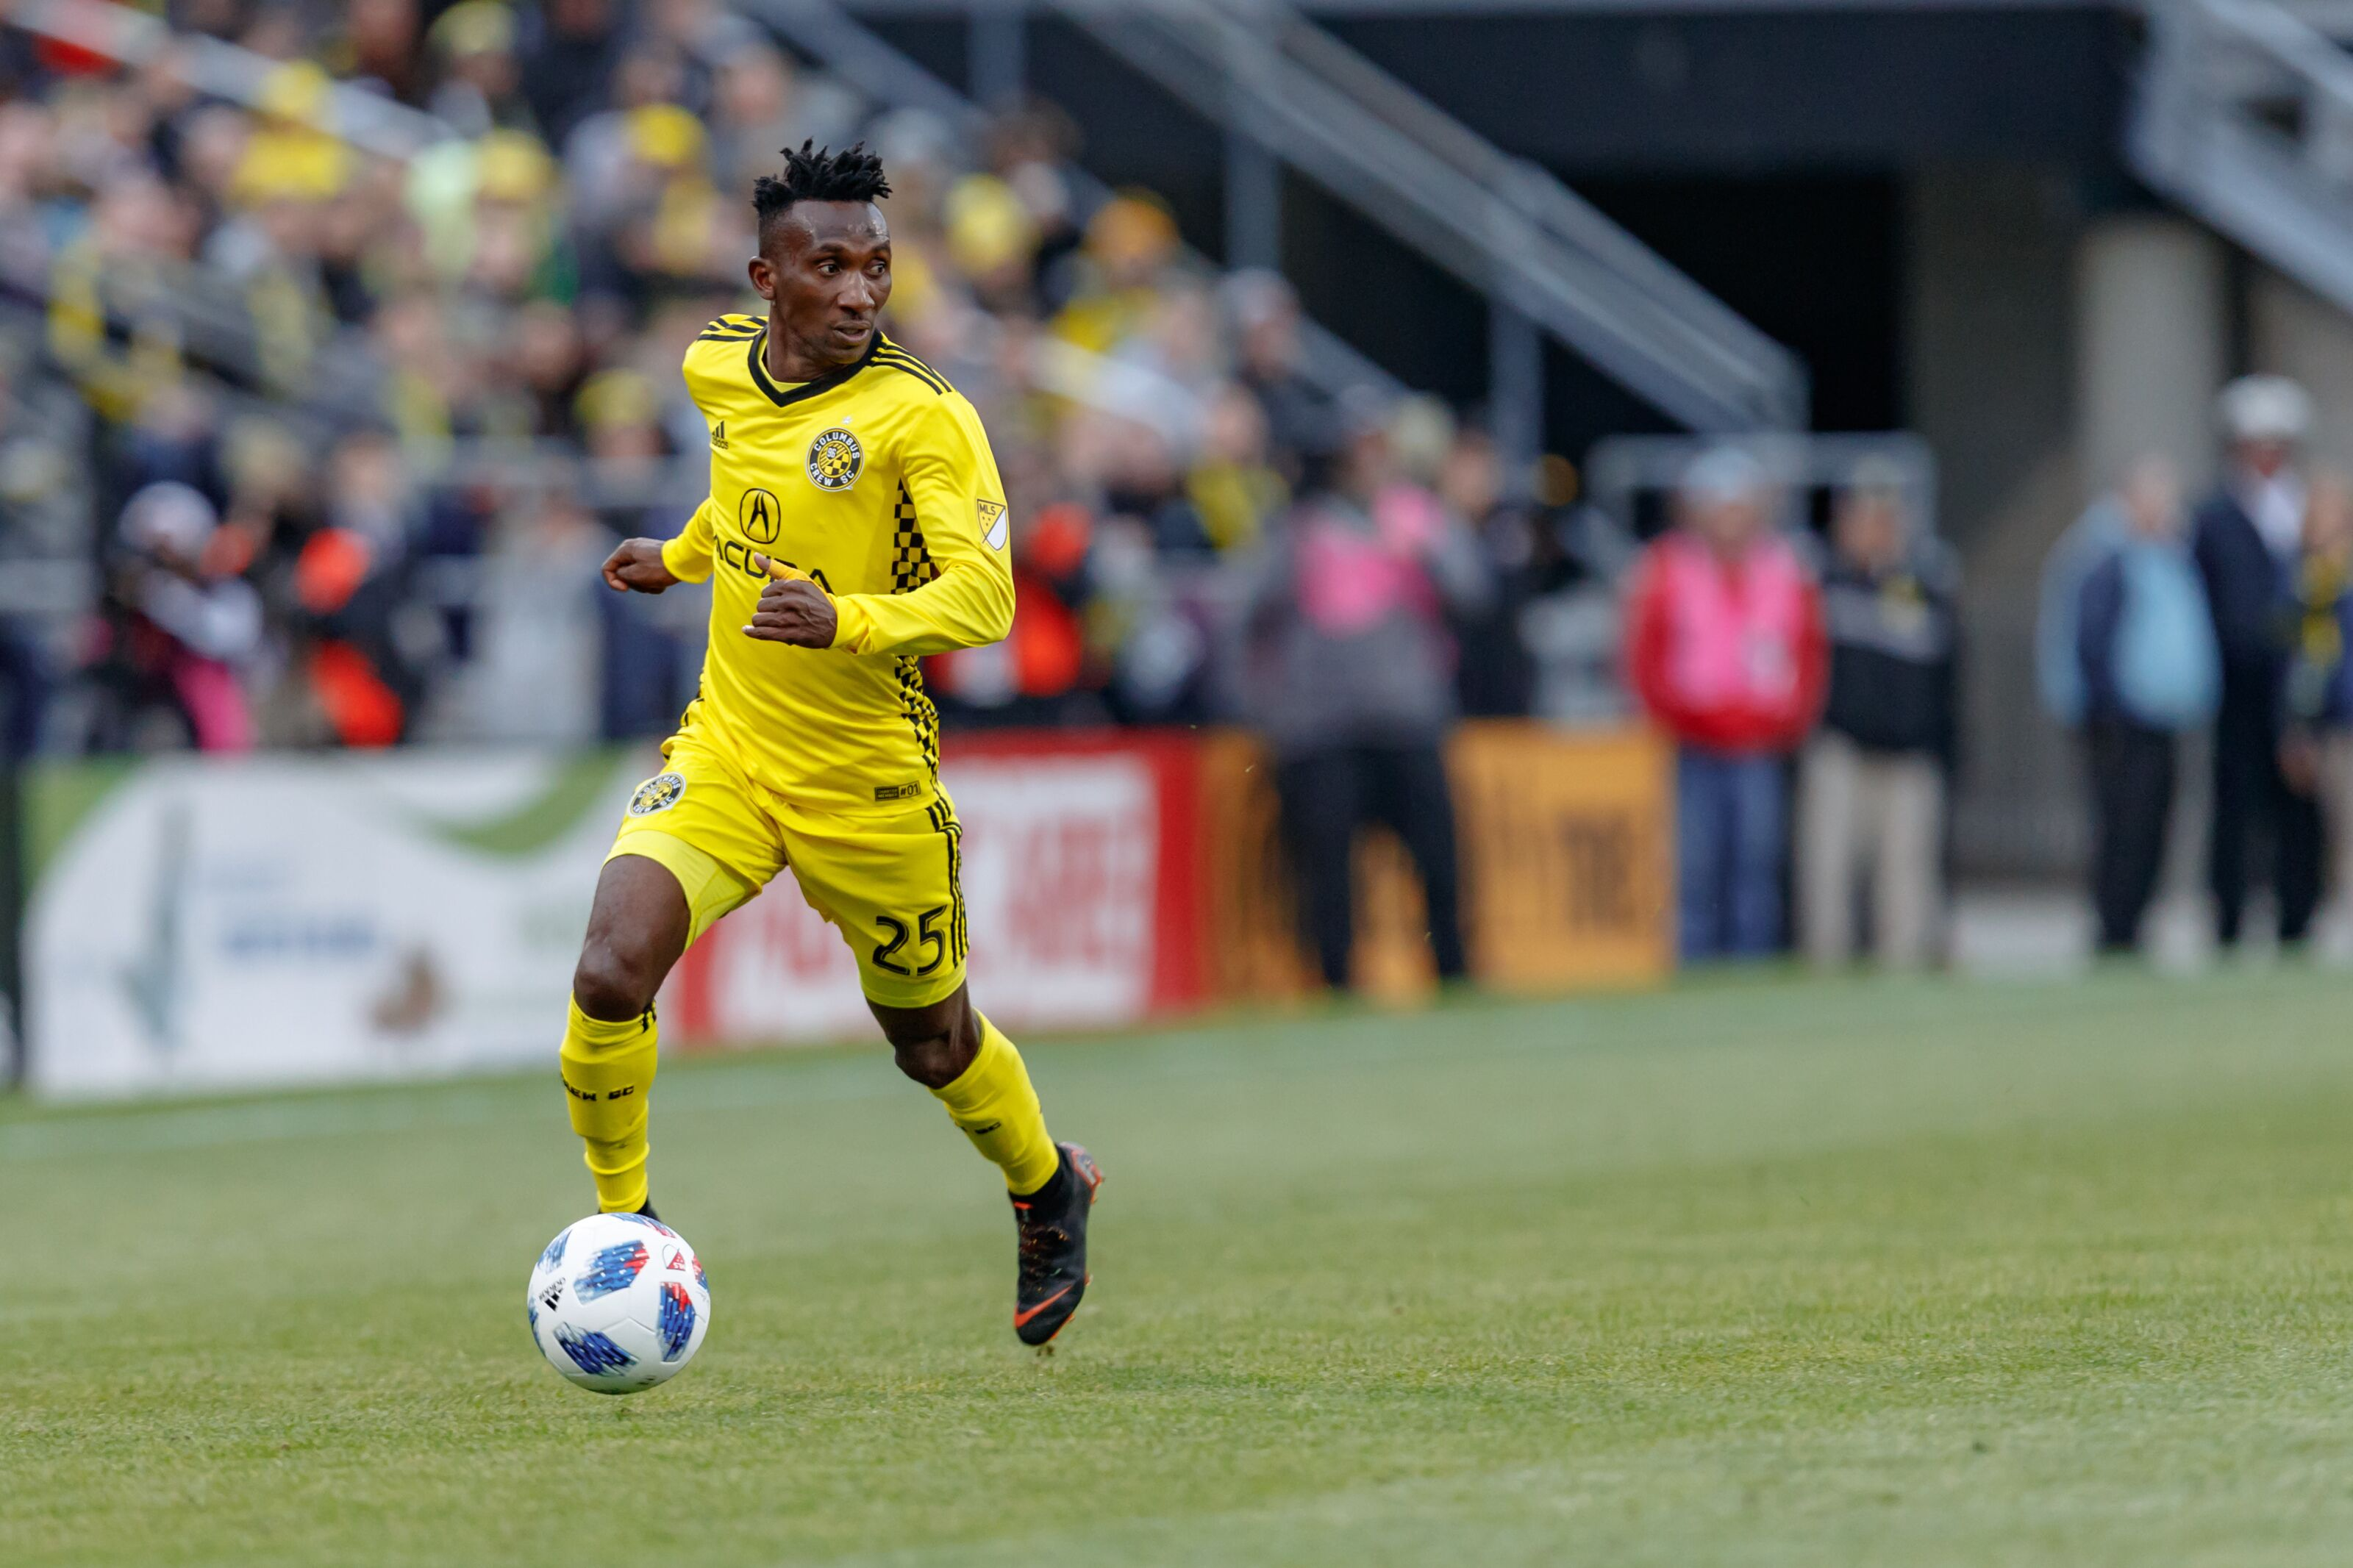 Columbus Crew Vs New York Red Bulls: Crew full backs must be careful